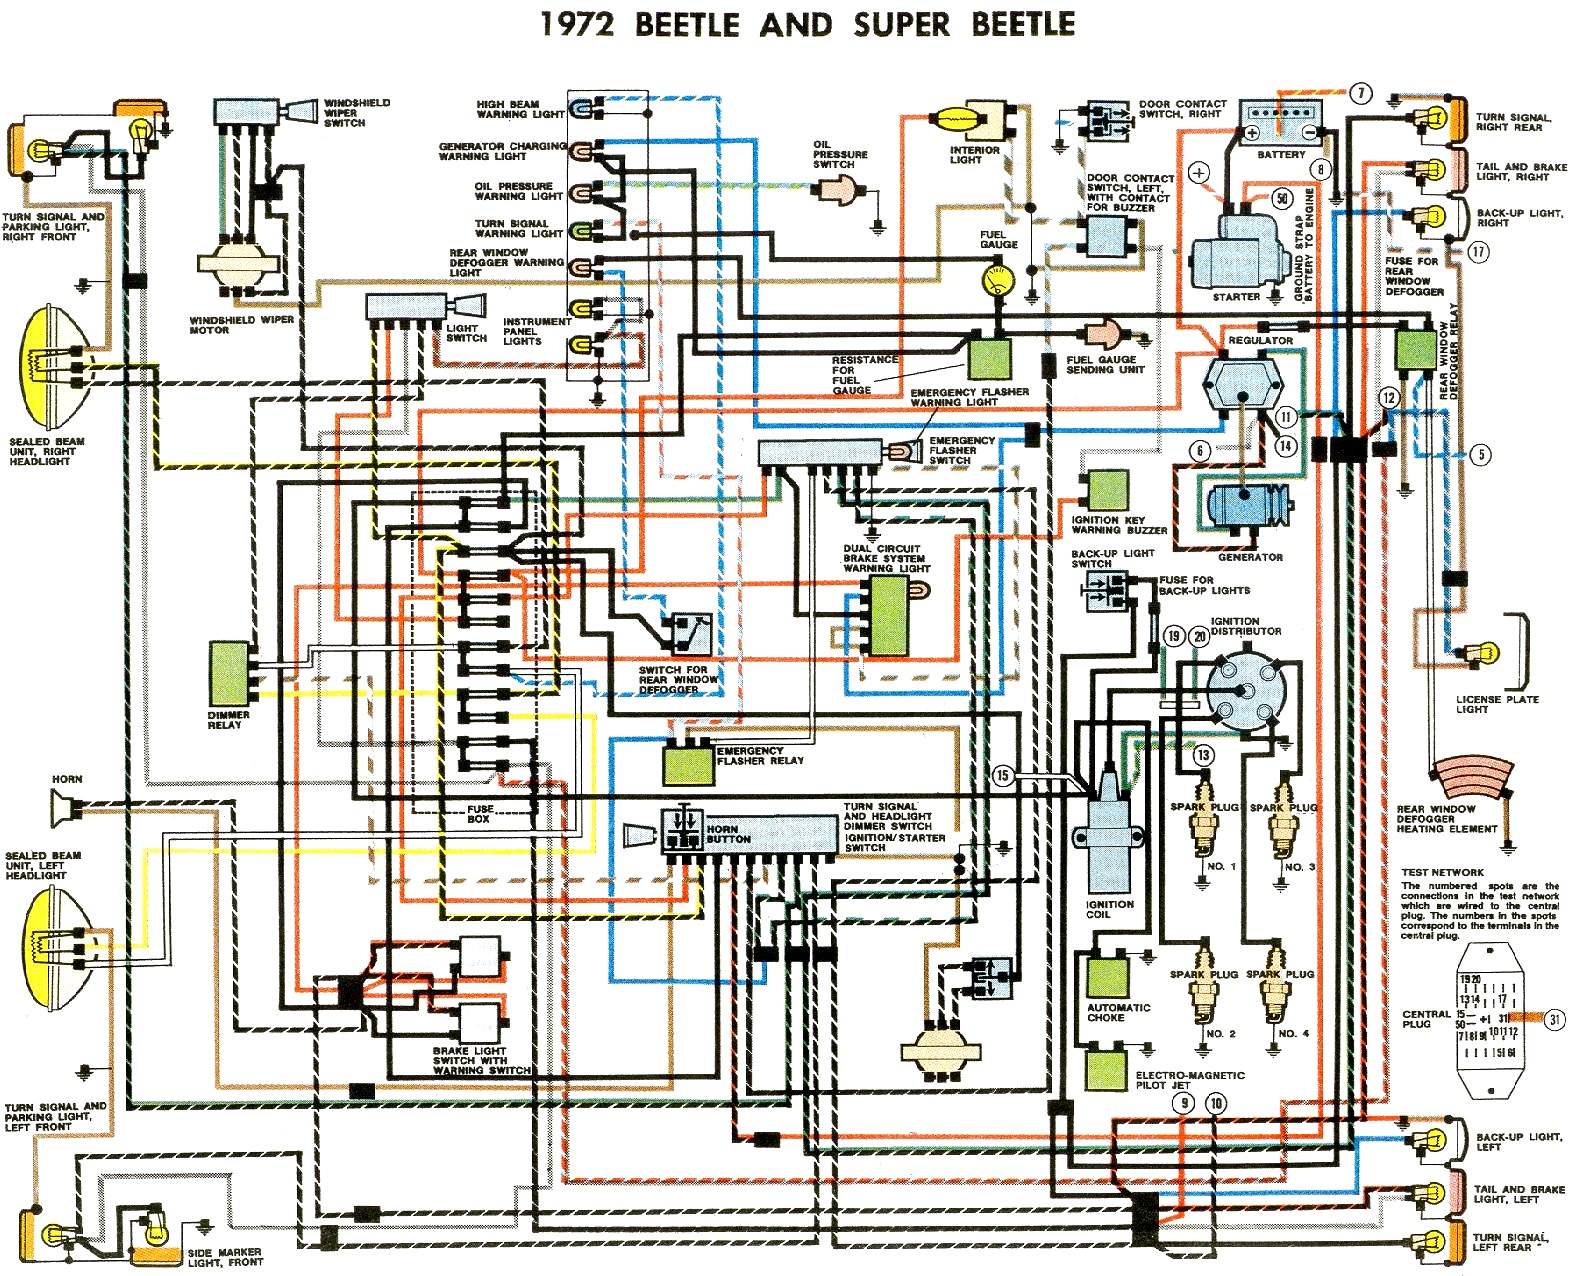 Mk4 Vw Golf Wiring Diagram - Go Wiring Diagram Vw Mkiv Headlight Wiring Diagram on vw headlight relay, vw headlight plug, vw fuel pump diagram, vw headlight turn signals, vw headlight assembly, vw steering column diagram, vw headlight switch, vw alternator diagram, 1968 volkswagen headlight switch diagram, vw fuse box diagram,